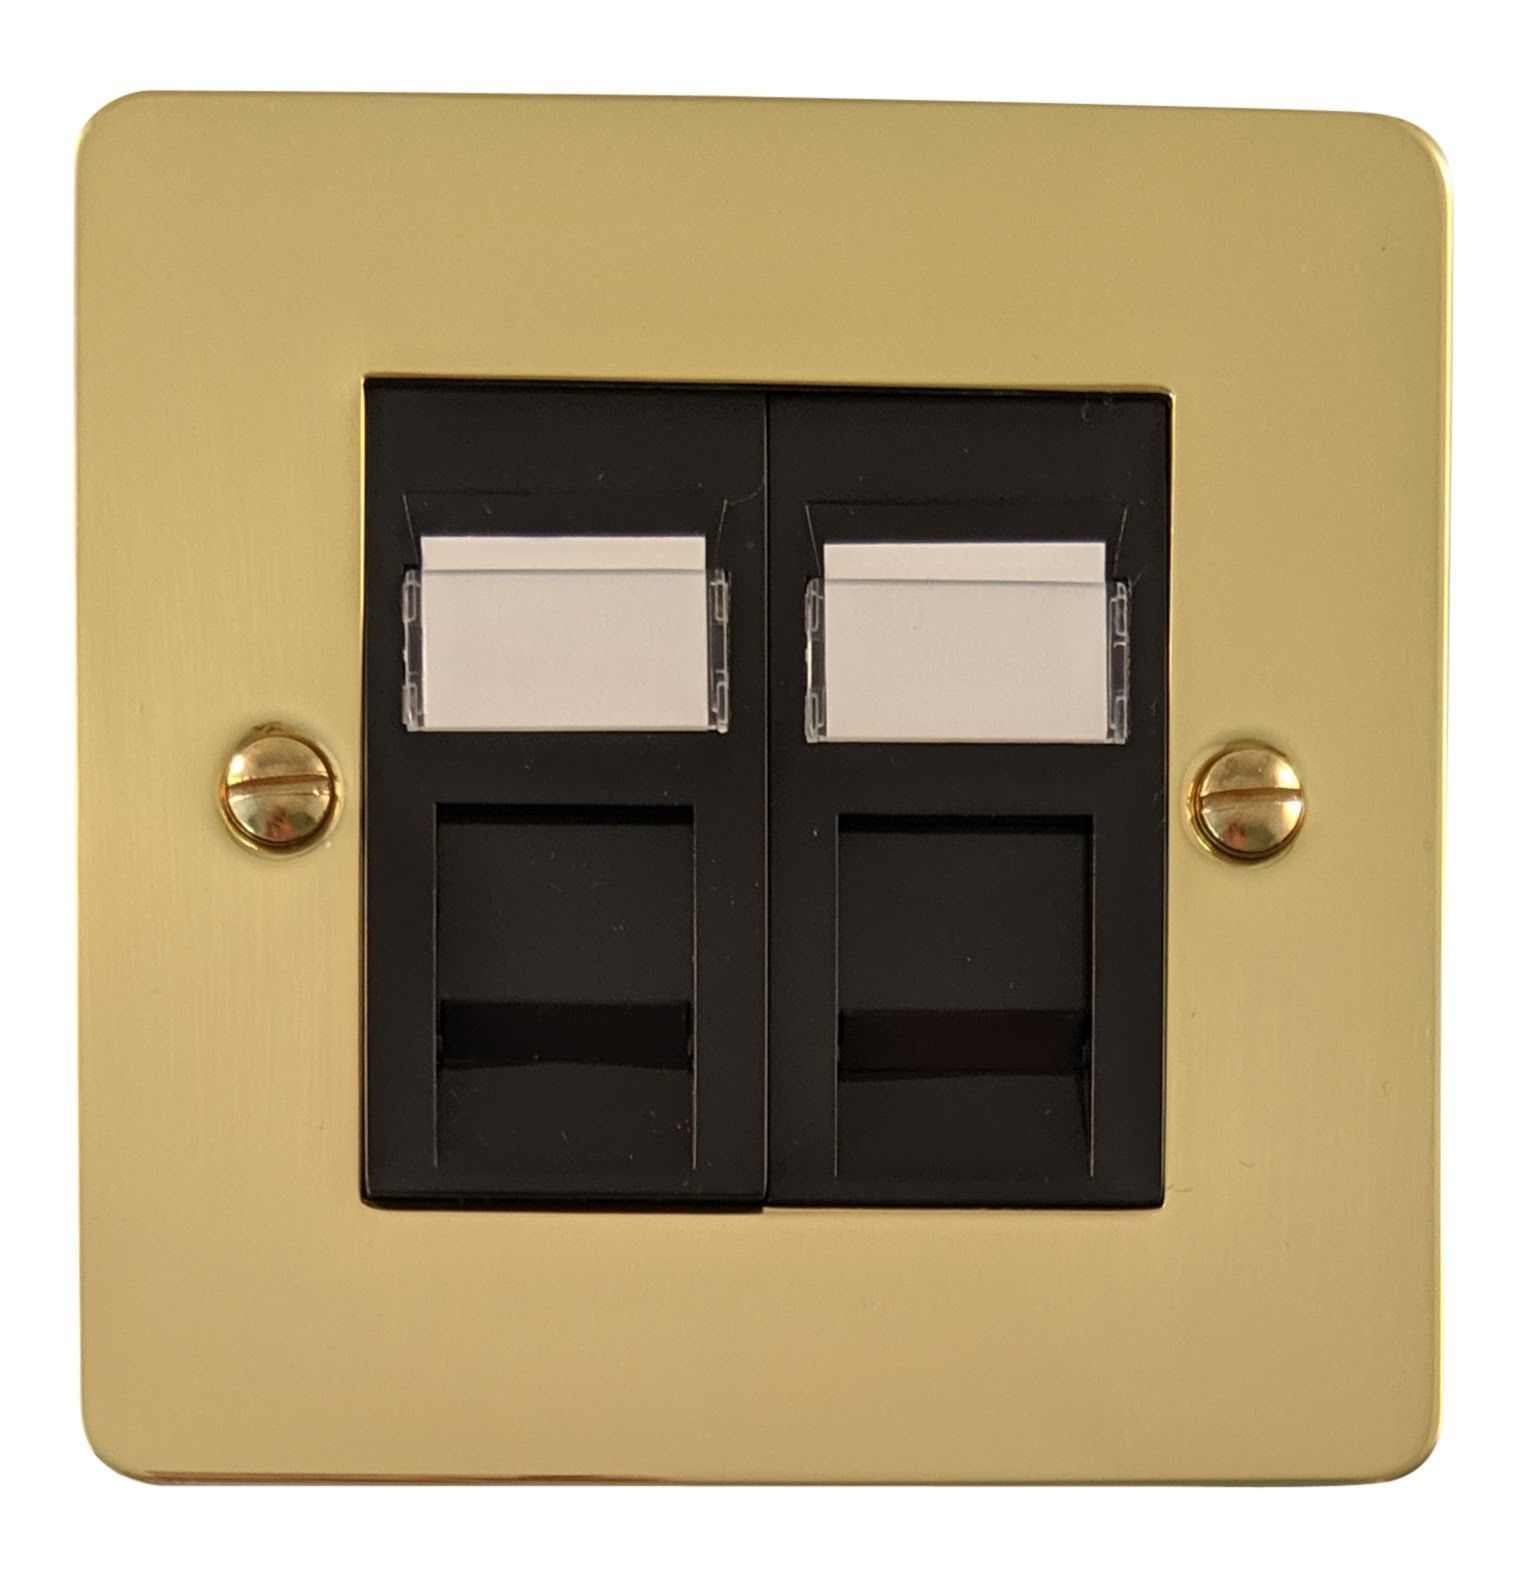 G&H FB62B Flat Plate Polished Brass 2 Gang RJ45 Cat5e Data Socket Point